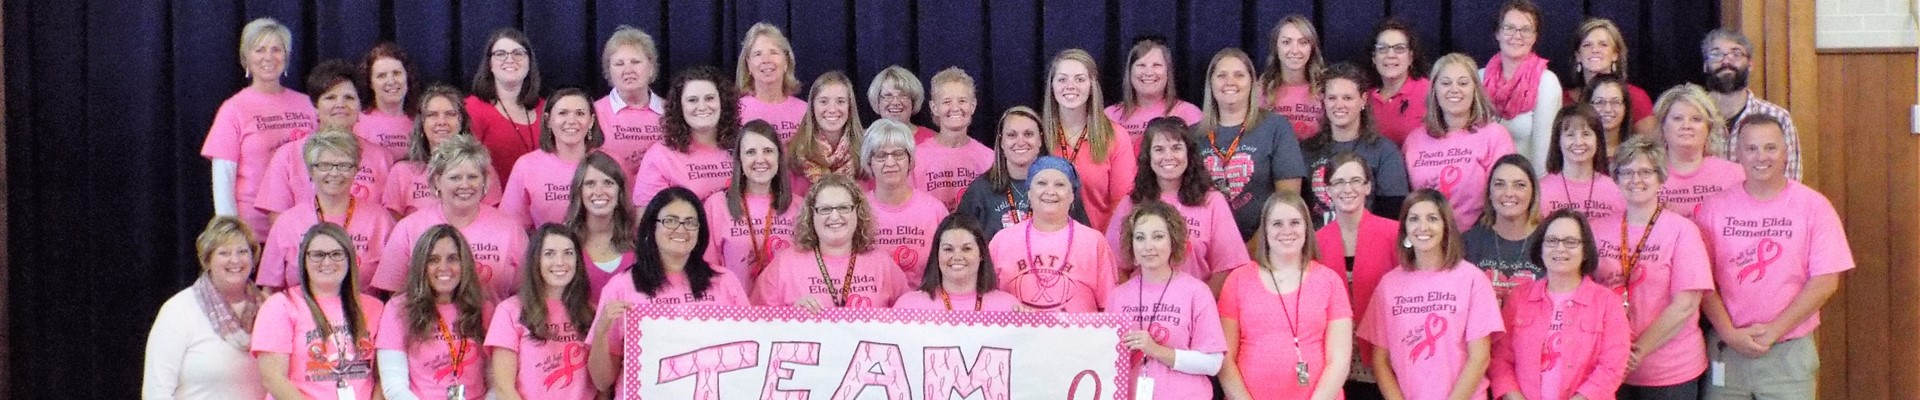 Team Elida! Our Elementary Staff & Teachers Are Great!